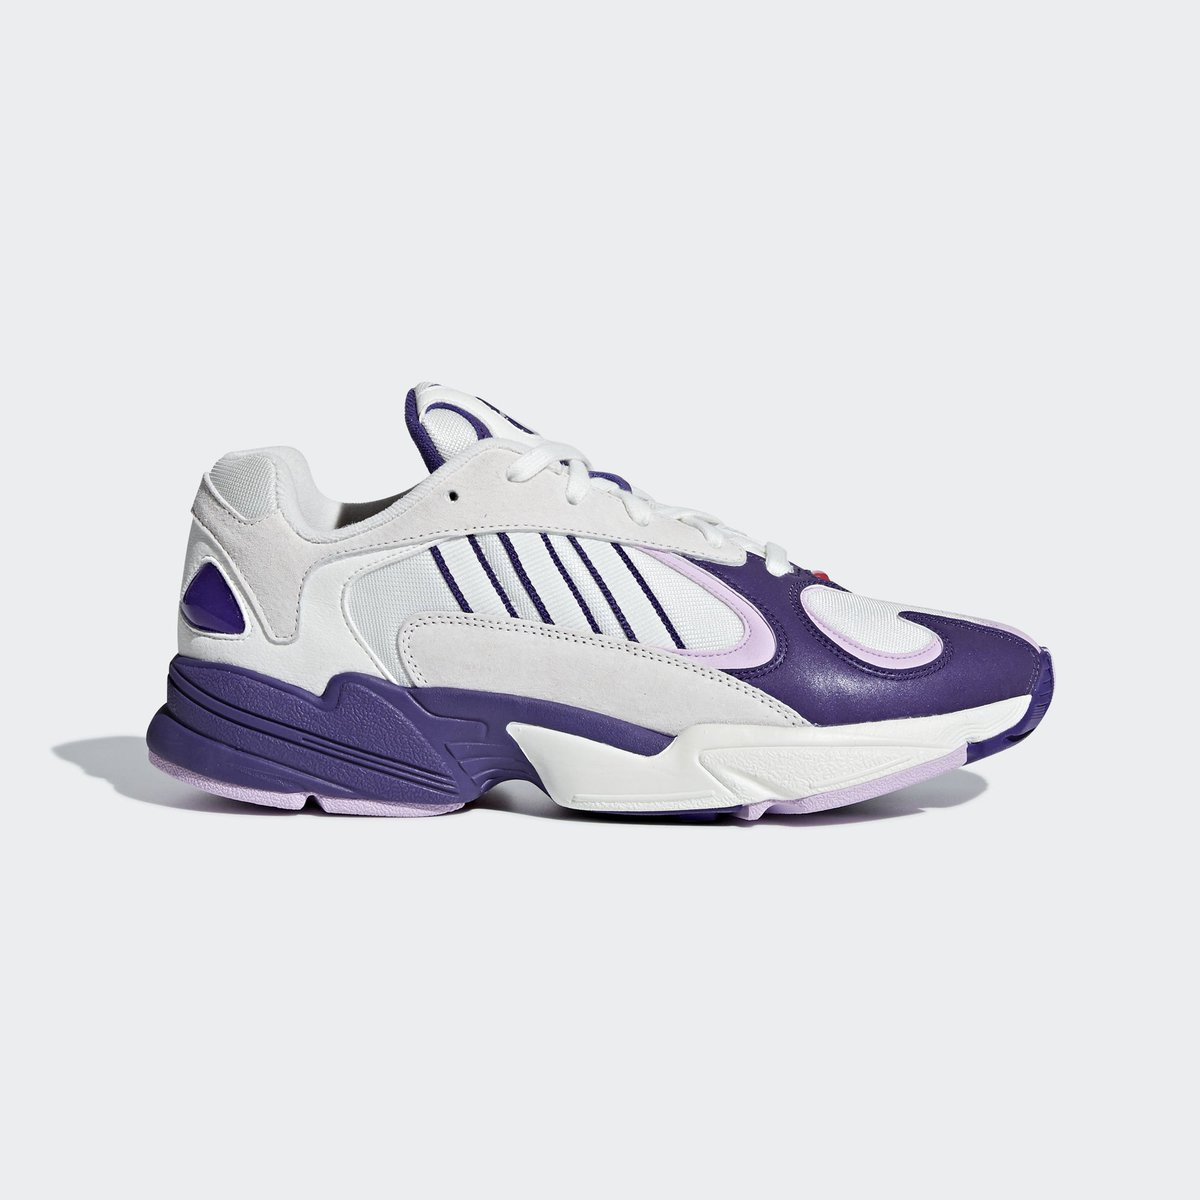 outlet store 90a6c 84b4f adidas alerts on Twitter: